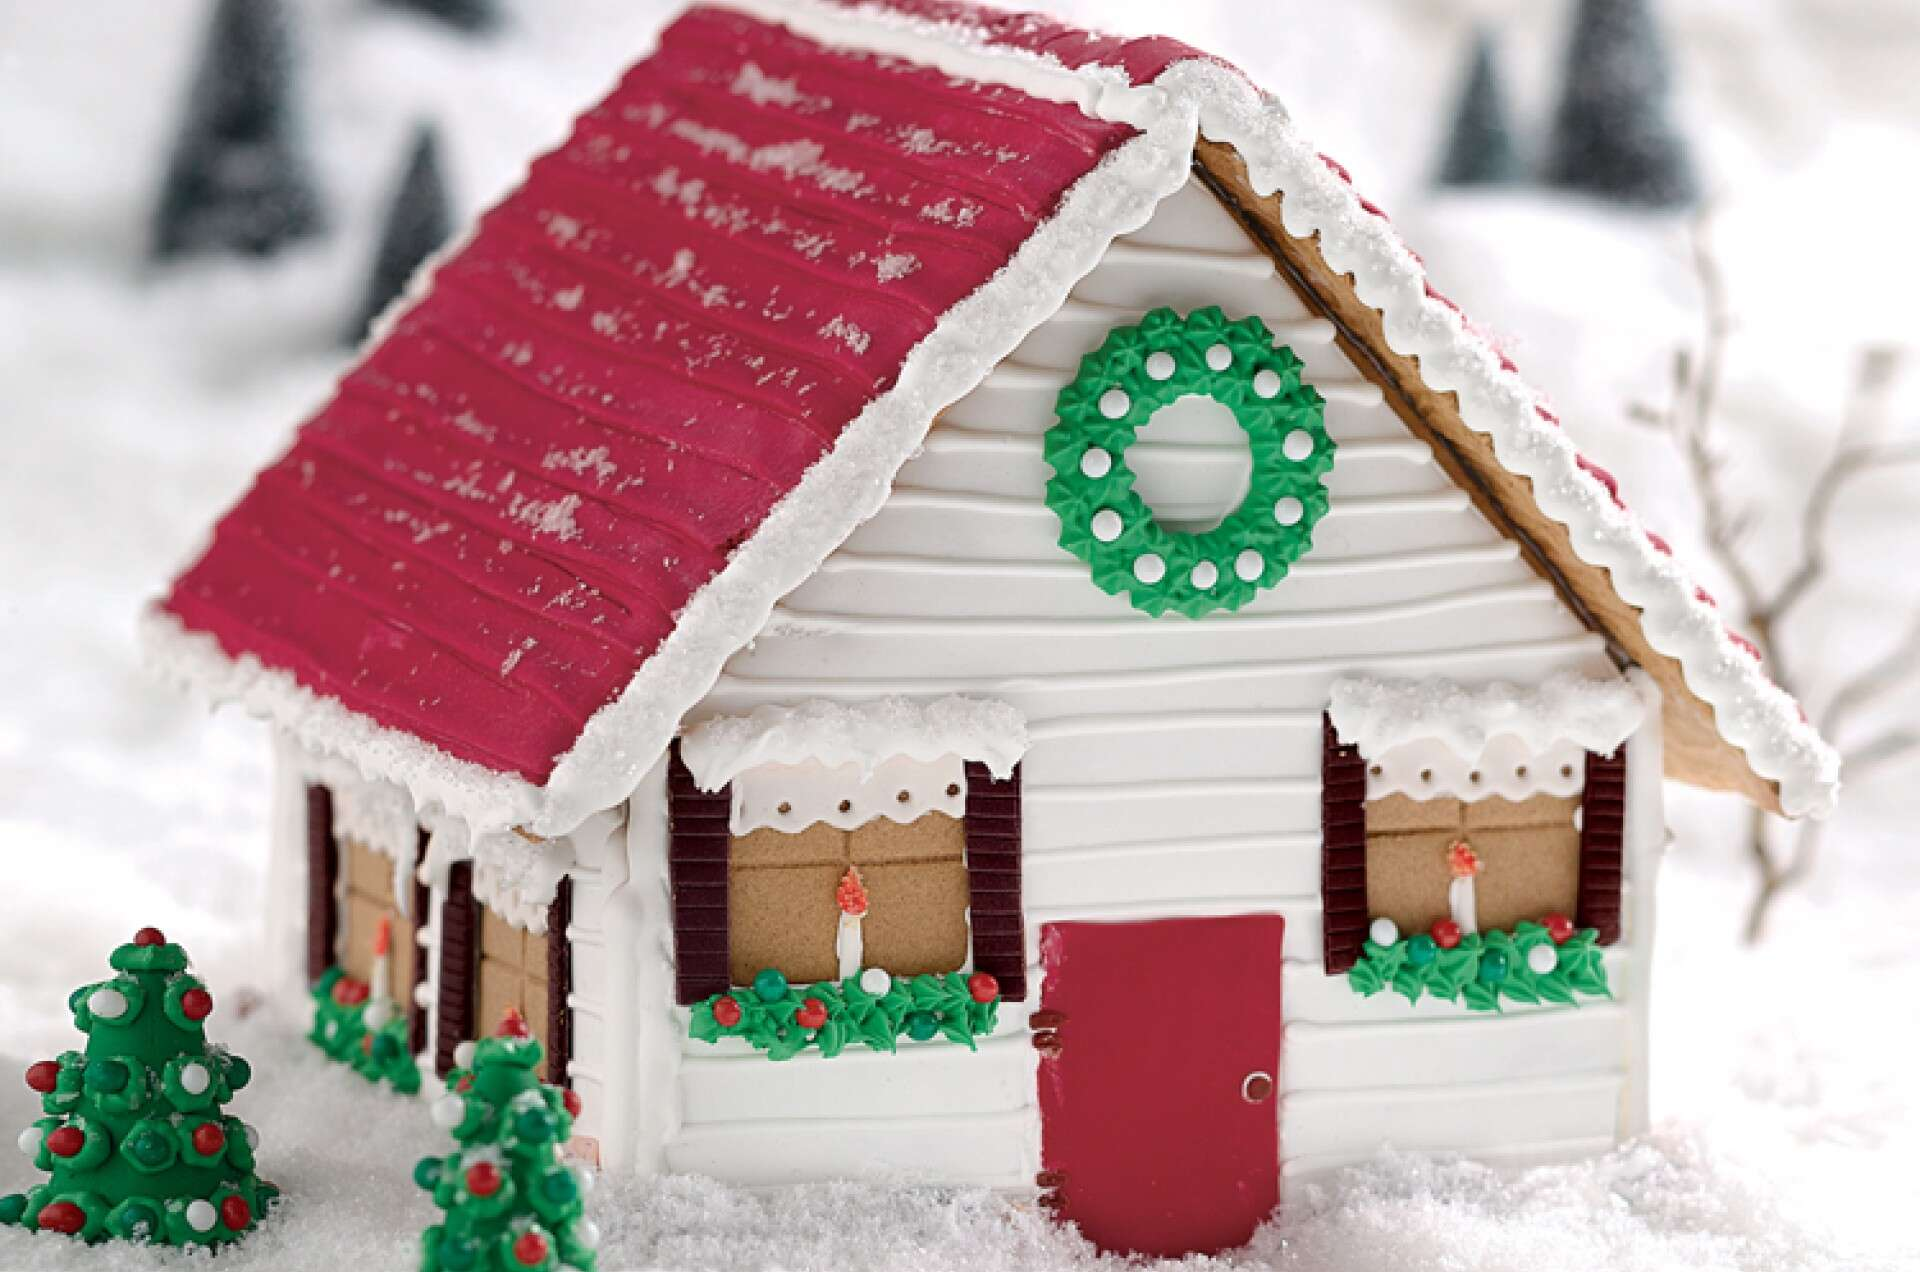 vermont-gingerbread-house_0.jpg